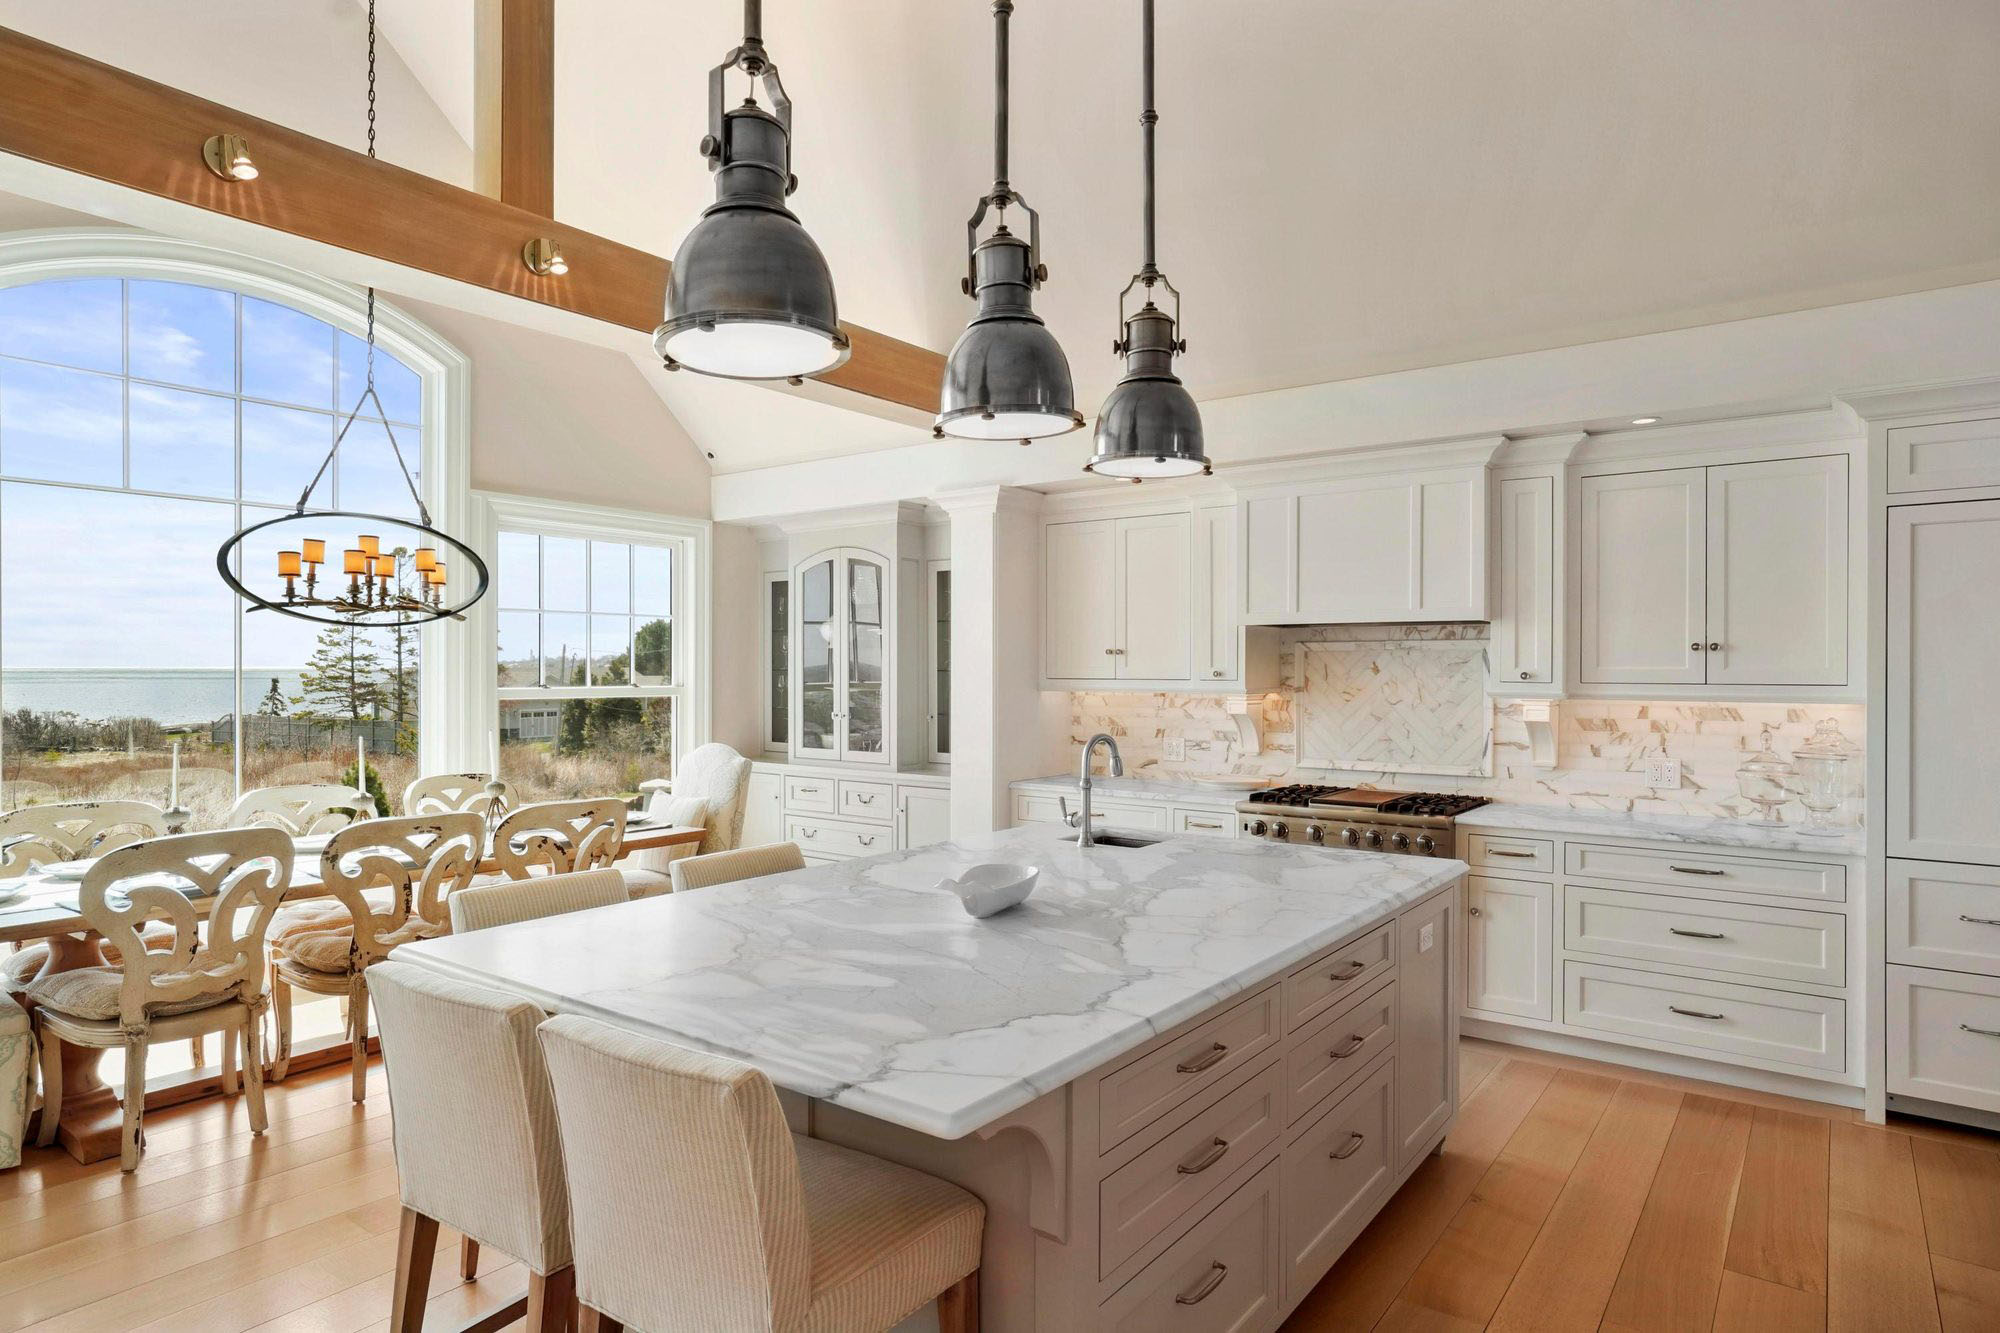 White shaker style kitchen cabinets with a matching island, marble countertops, industrial style pendant lighting and exposed ceiling beams.